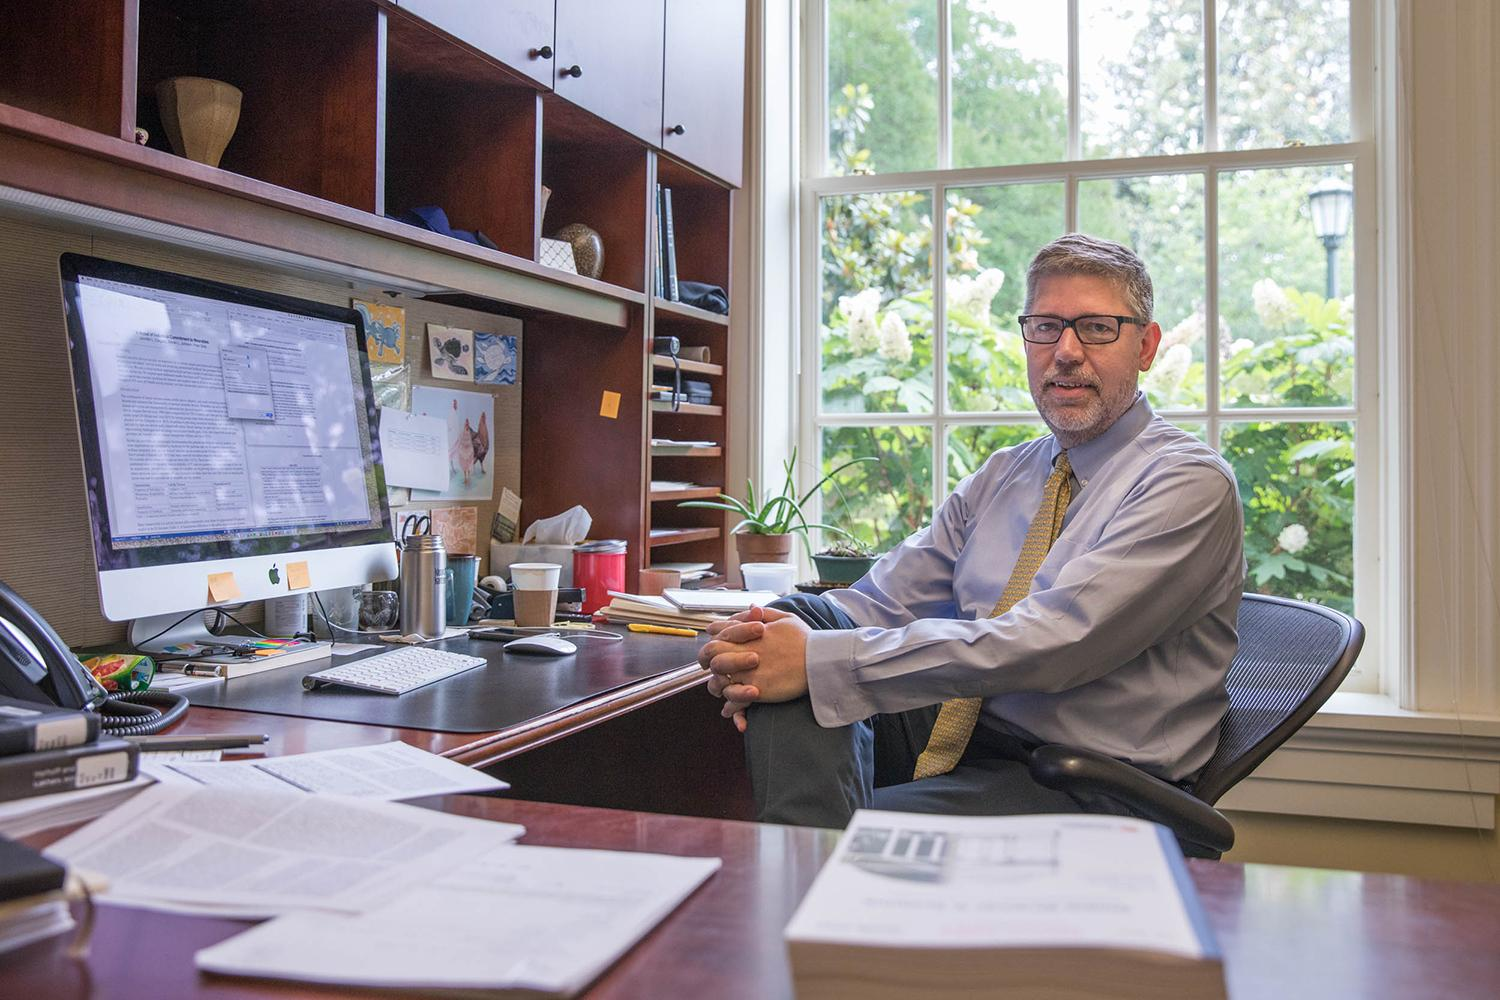 Steven L. Johnson is an associate professor of Commerce in UVA's McIntire School of Commerce.